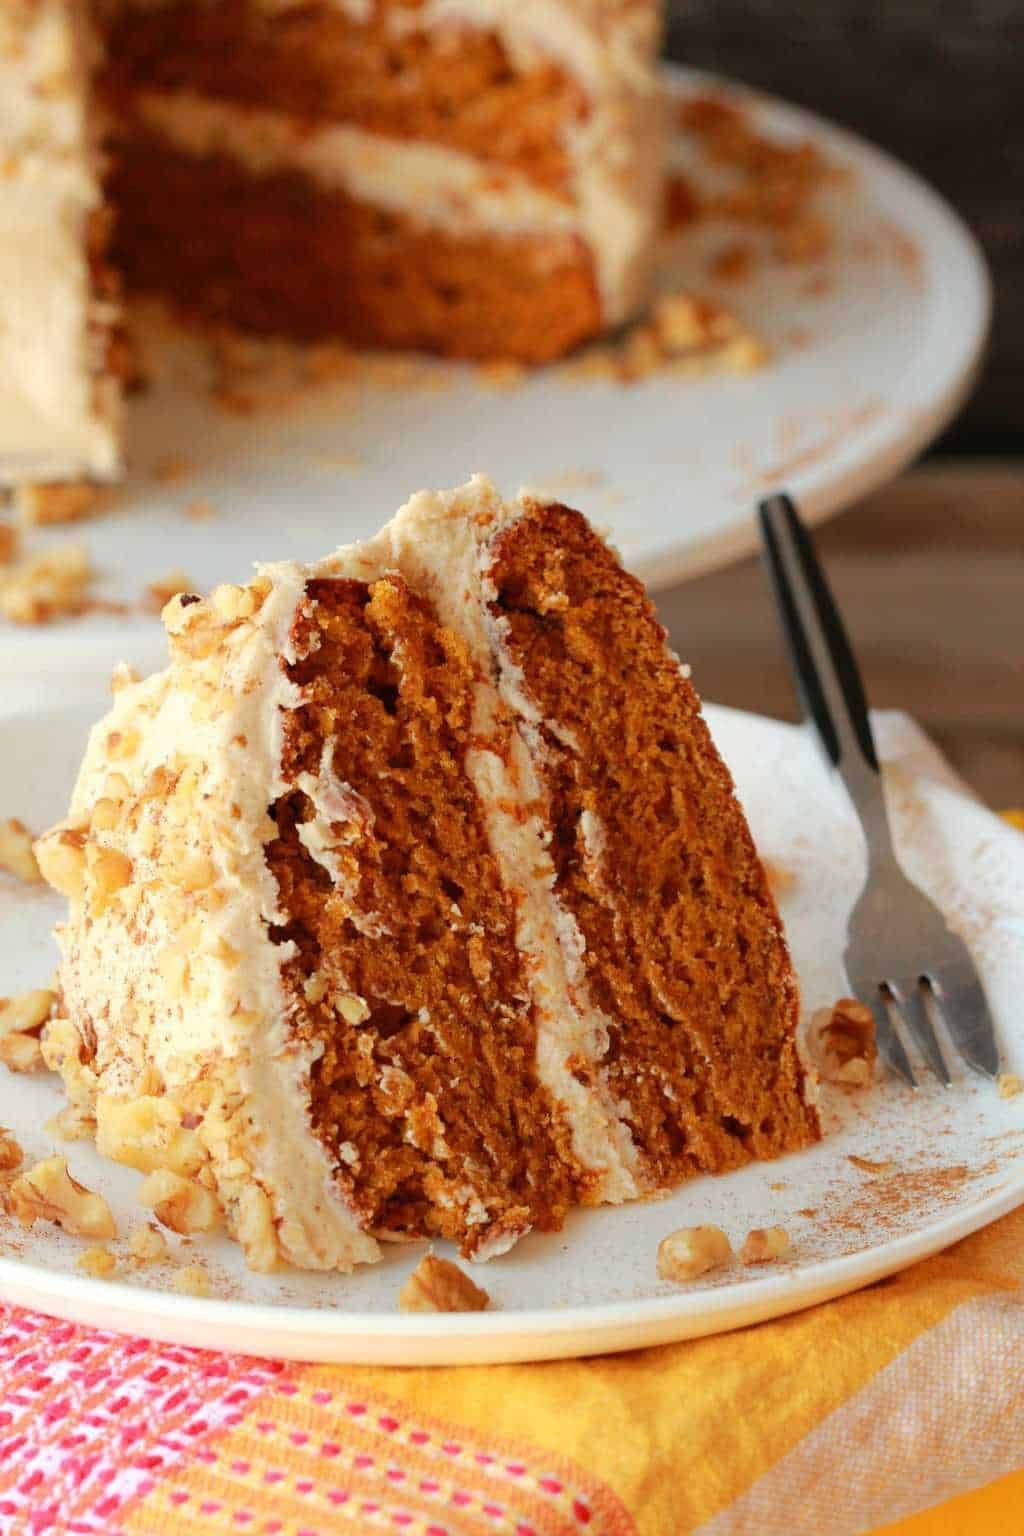 A slice of vegan pumpkin cake on a white plate with a cake fork.